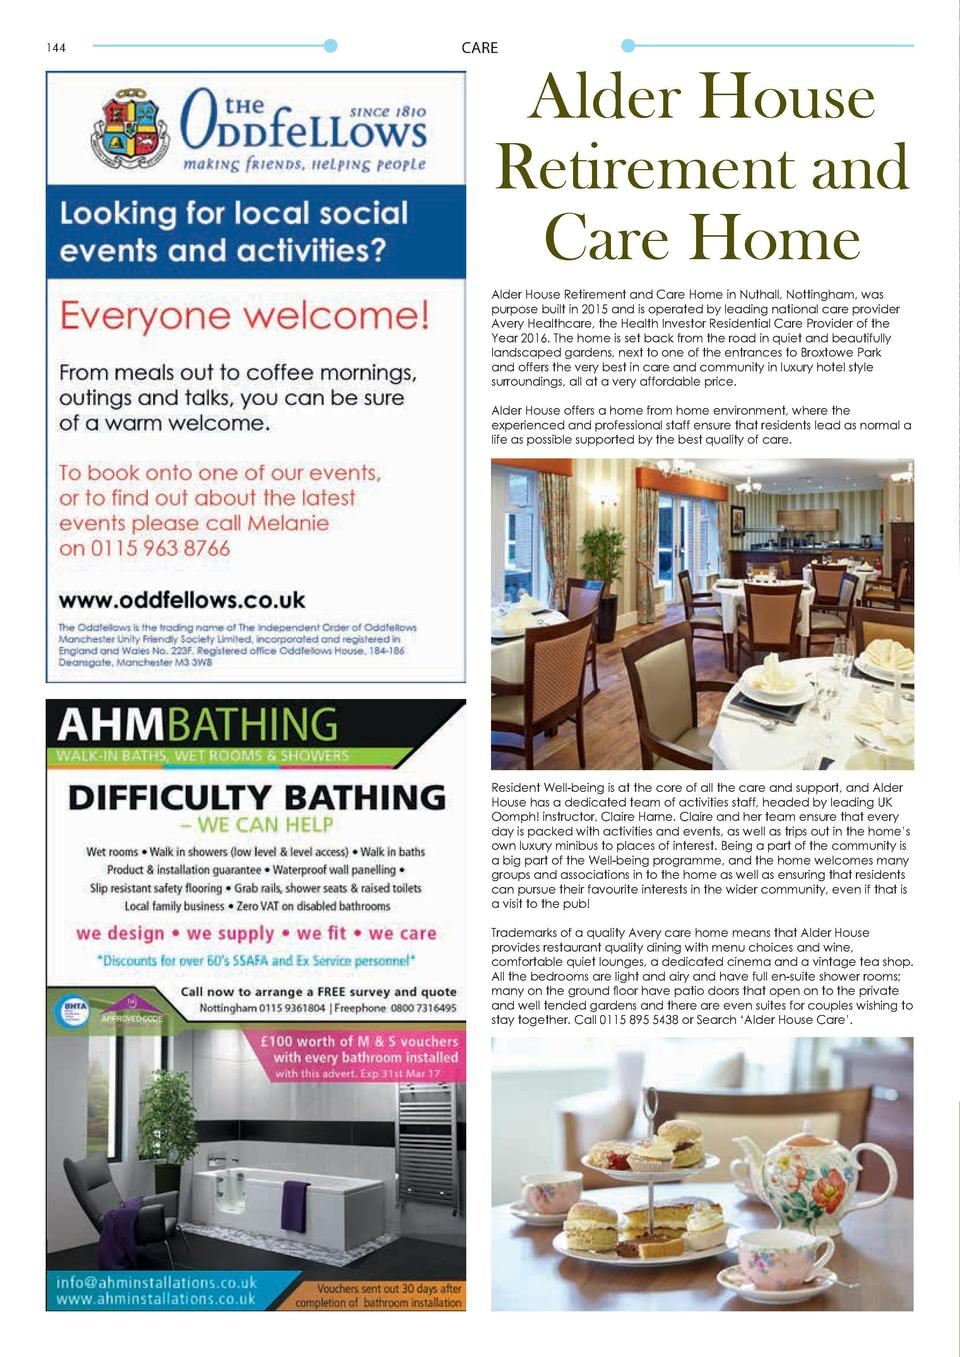 144  CARE  Alder House Retirement and Care Home Alder House Retirement and Care Home in Nuthall, Nottingham, was purpose b...